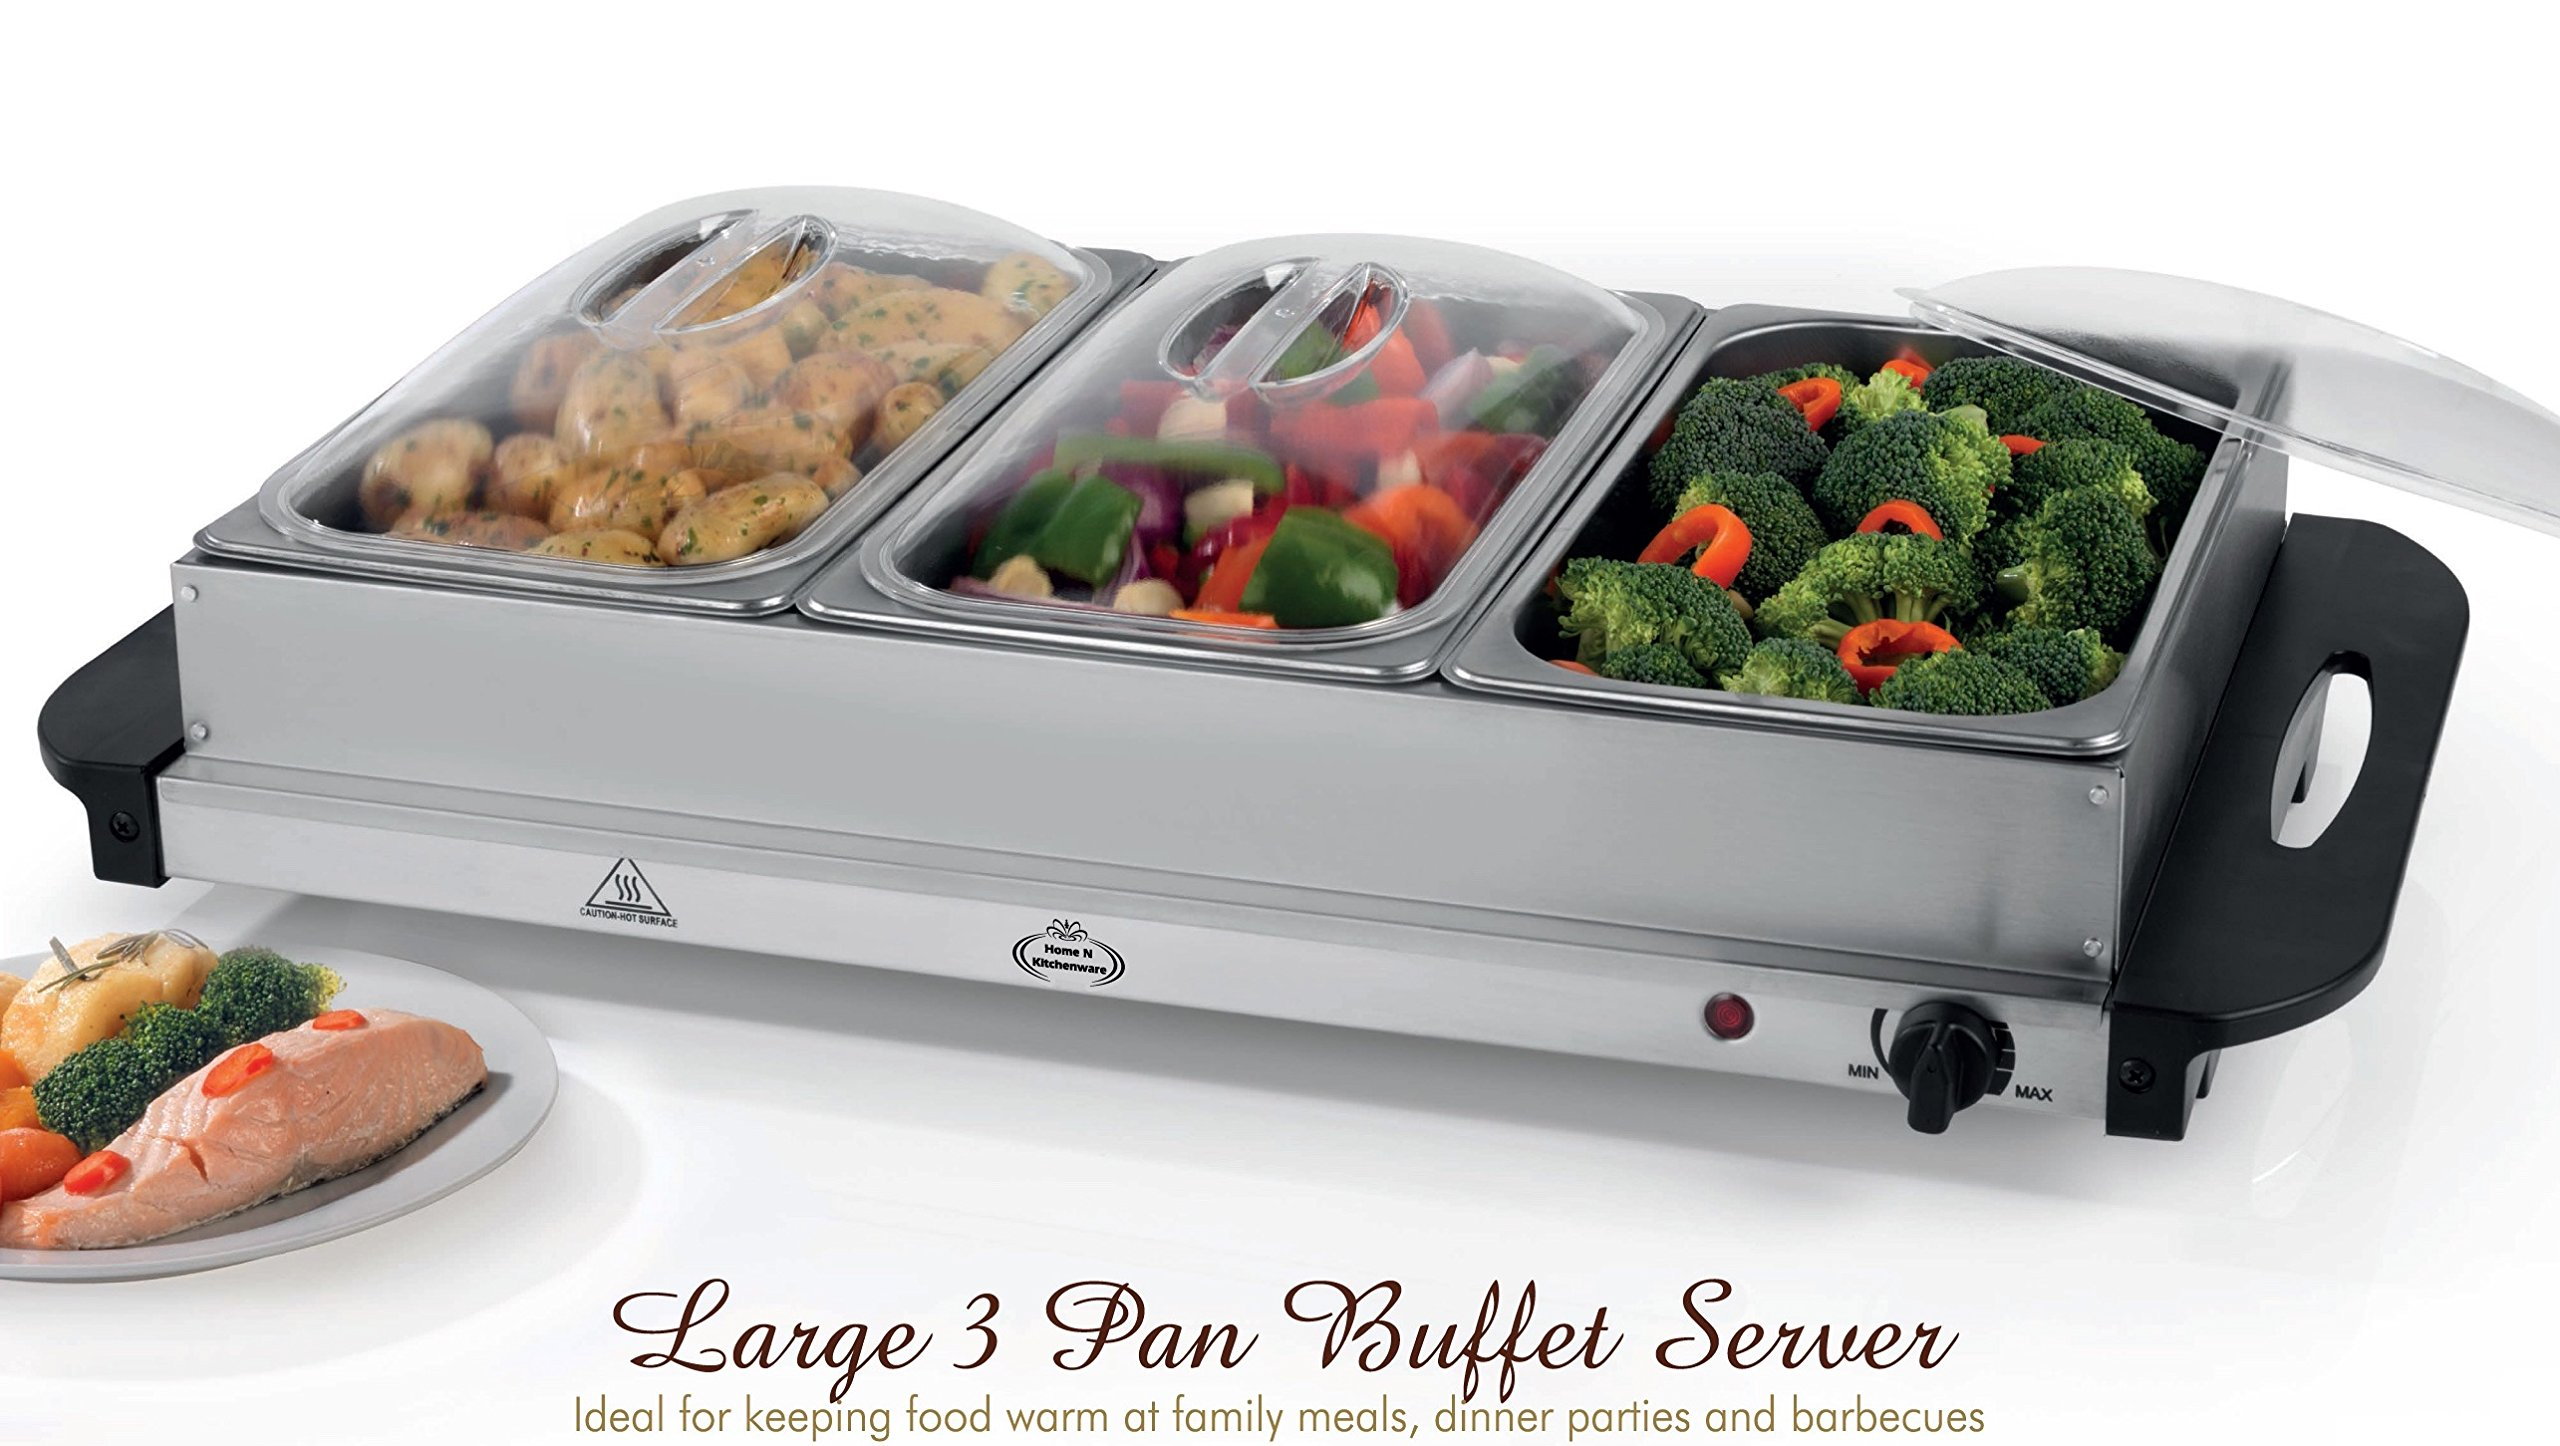 Home N Kitchenware Collection Large 3 Pan Electric Buffet Server, Chafer Stainless Steel, Removable Warming Pans, 300W by Home N Kitchenware